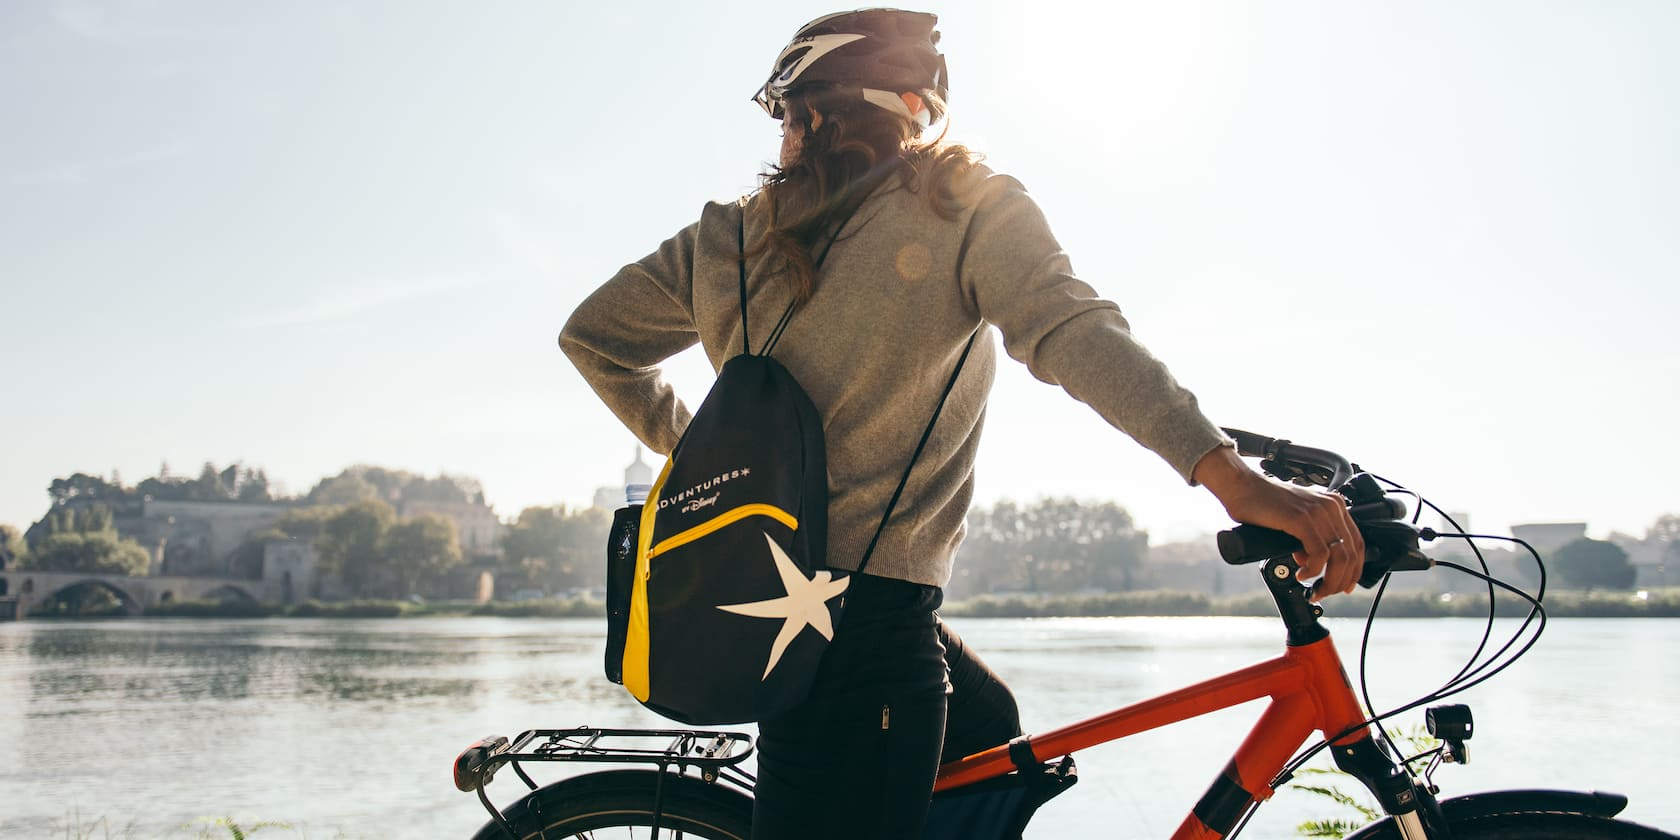 An Adventurer wearing an Adventures by Disney sack sits on a bicycle and looks out at the Rhône River